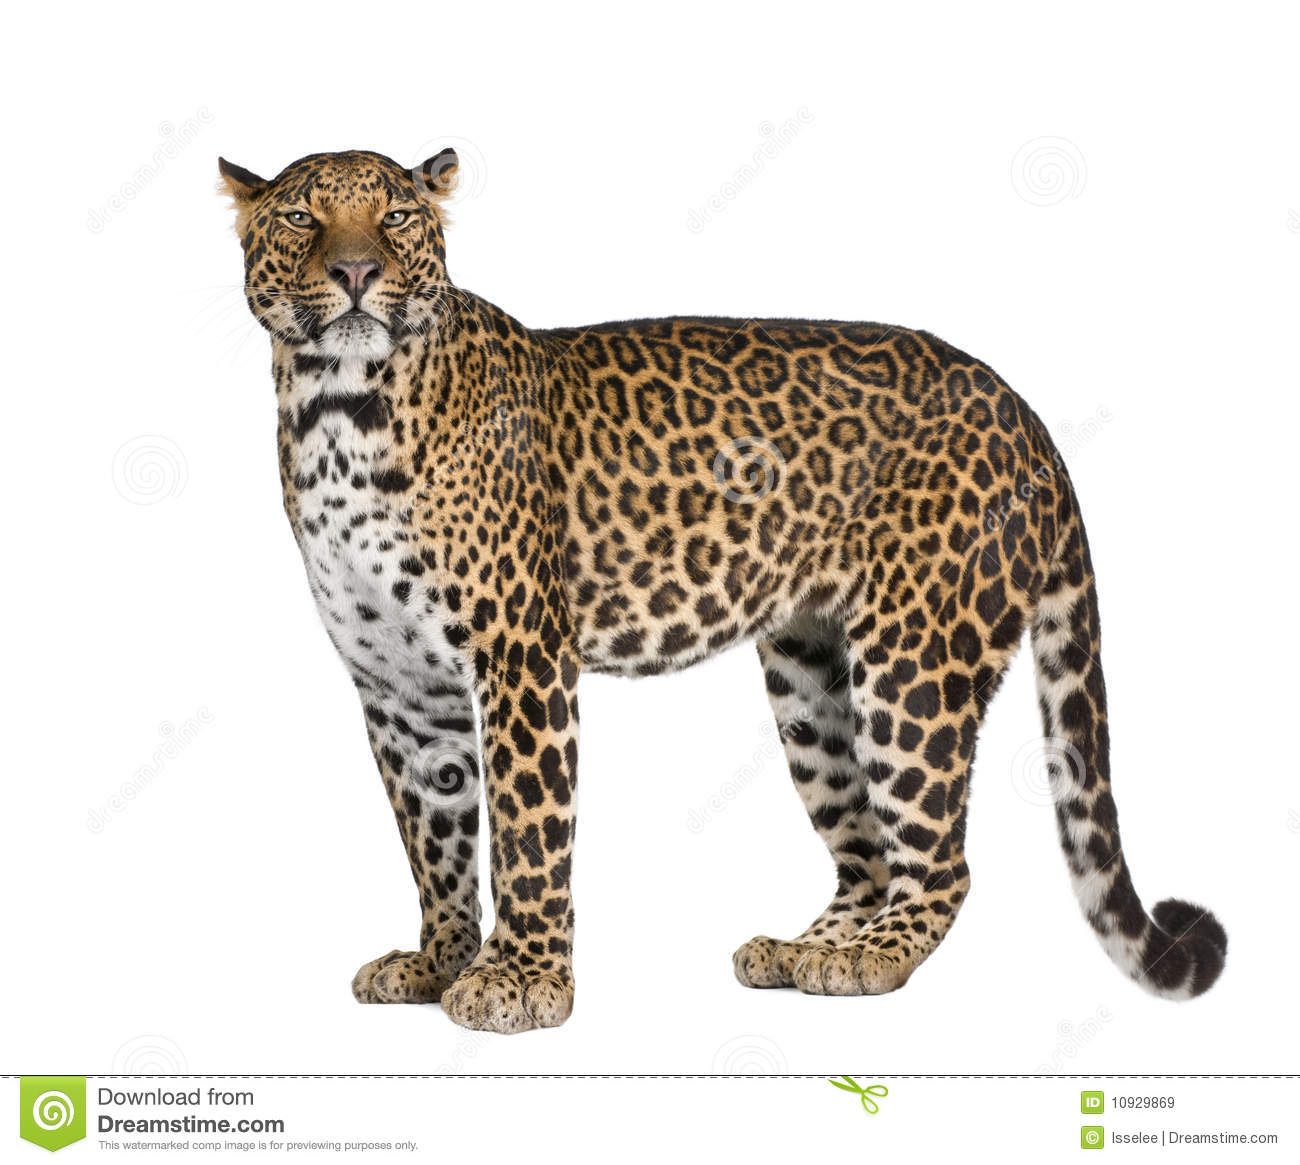 Leopard in front of a white background